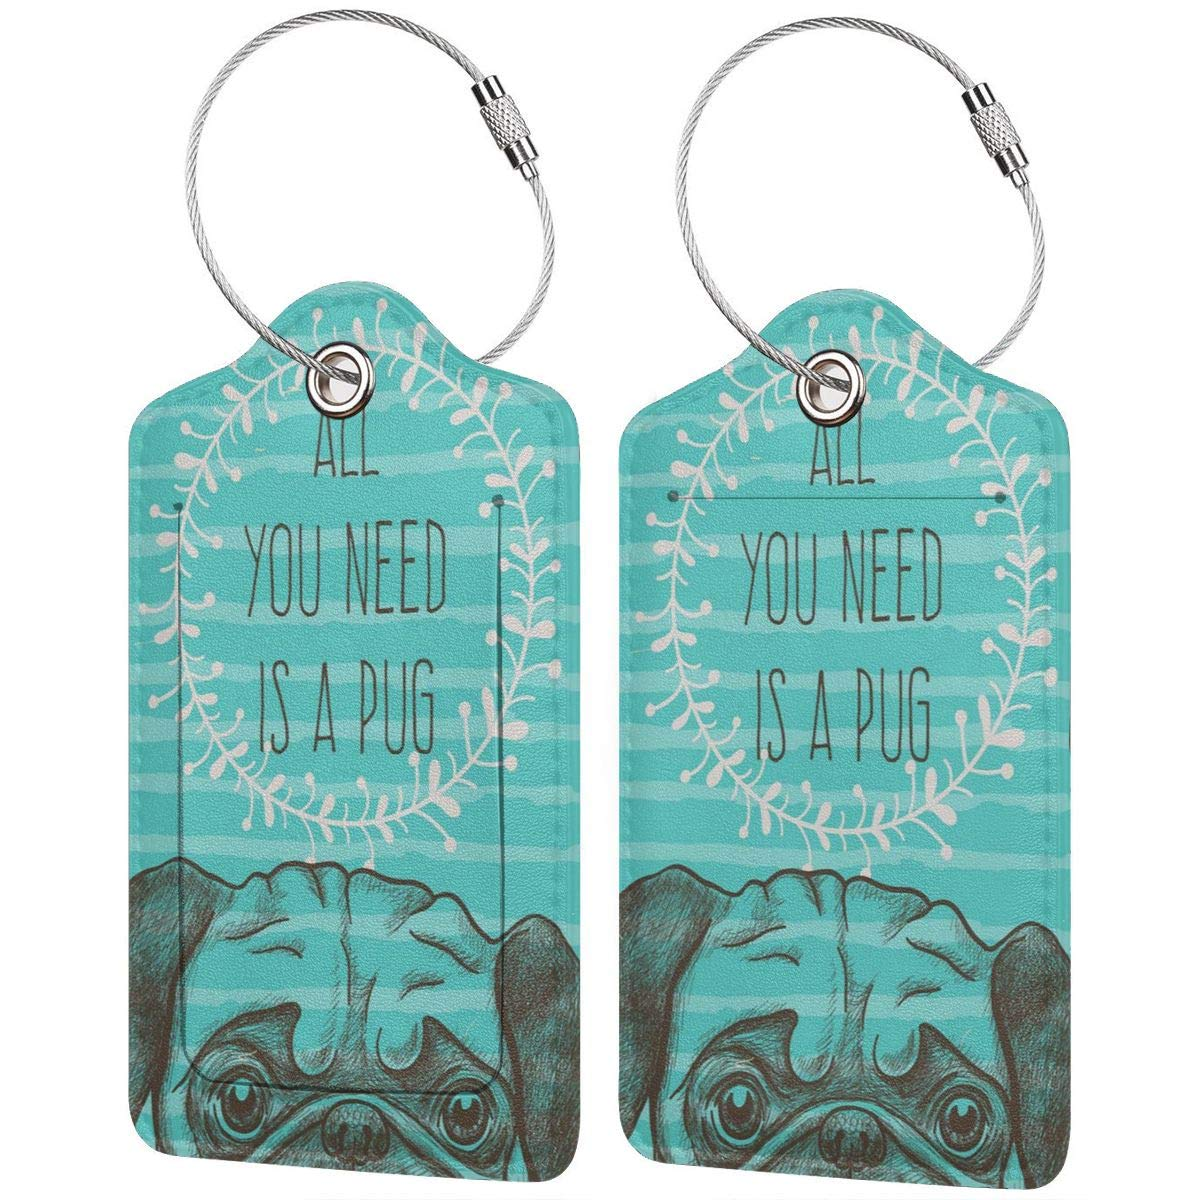 Leather Luggage Tag All You Need Is A Pug Aqua Dog Luggage Tags For Suitcase Travel Lover Gifts For Men Women 4 PCS